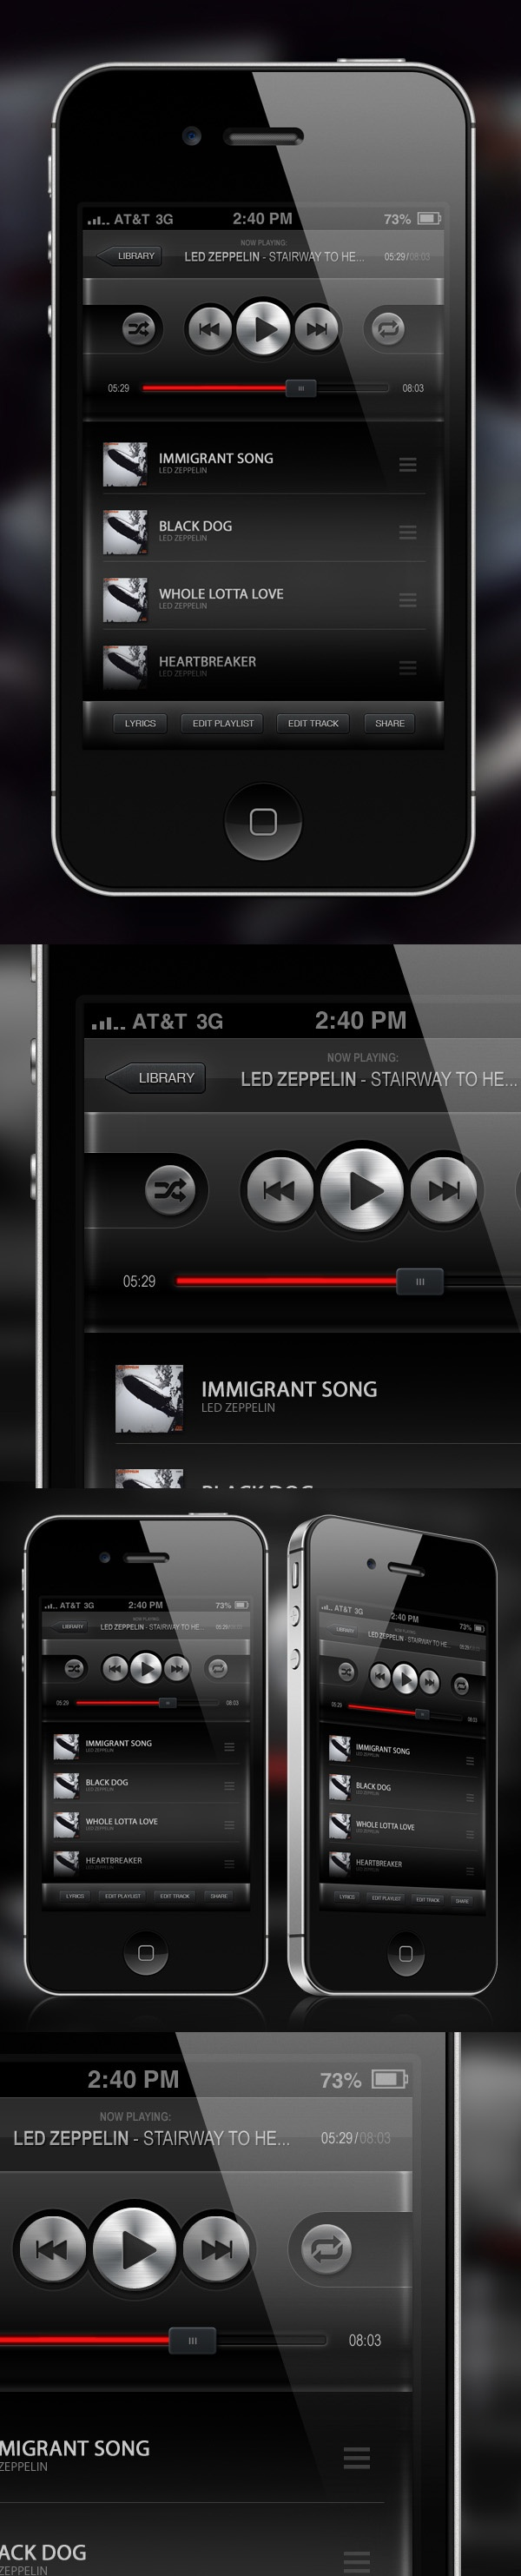 Music Player App GUI by Petr Knoll